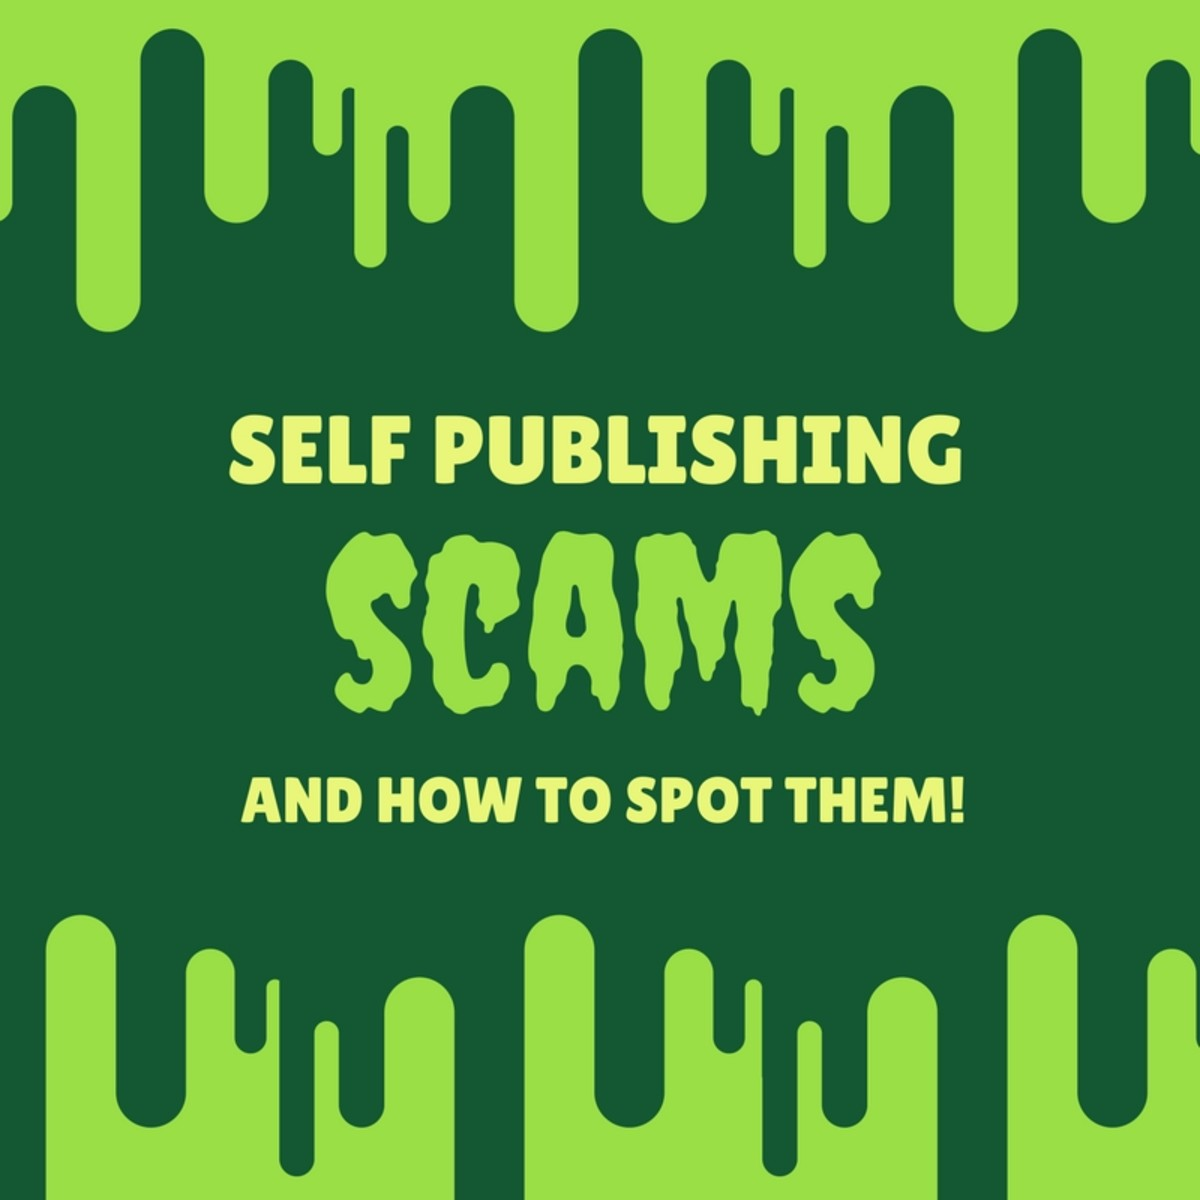 Self-Publishing Scams and How to Spot Them